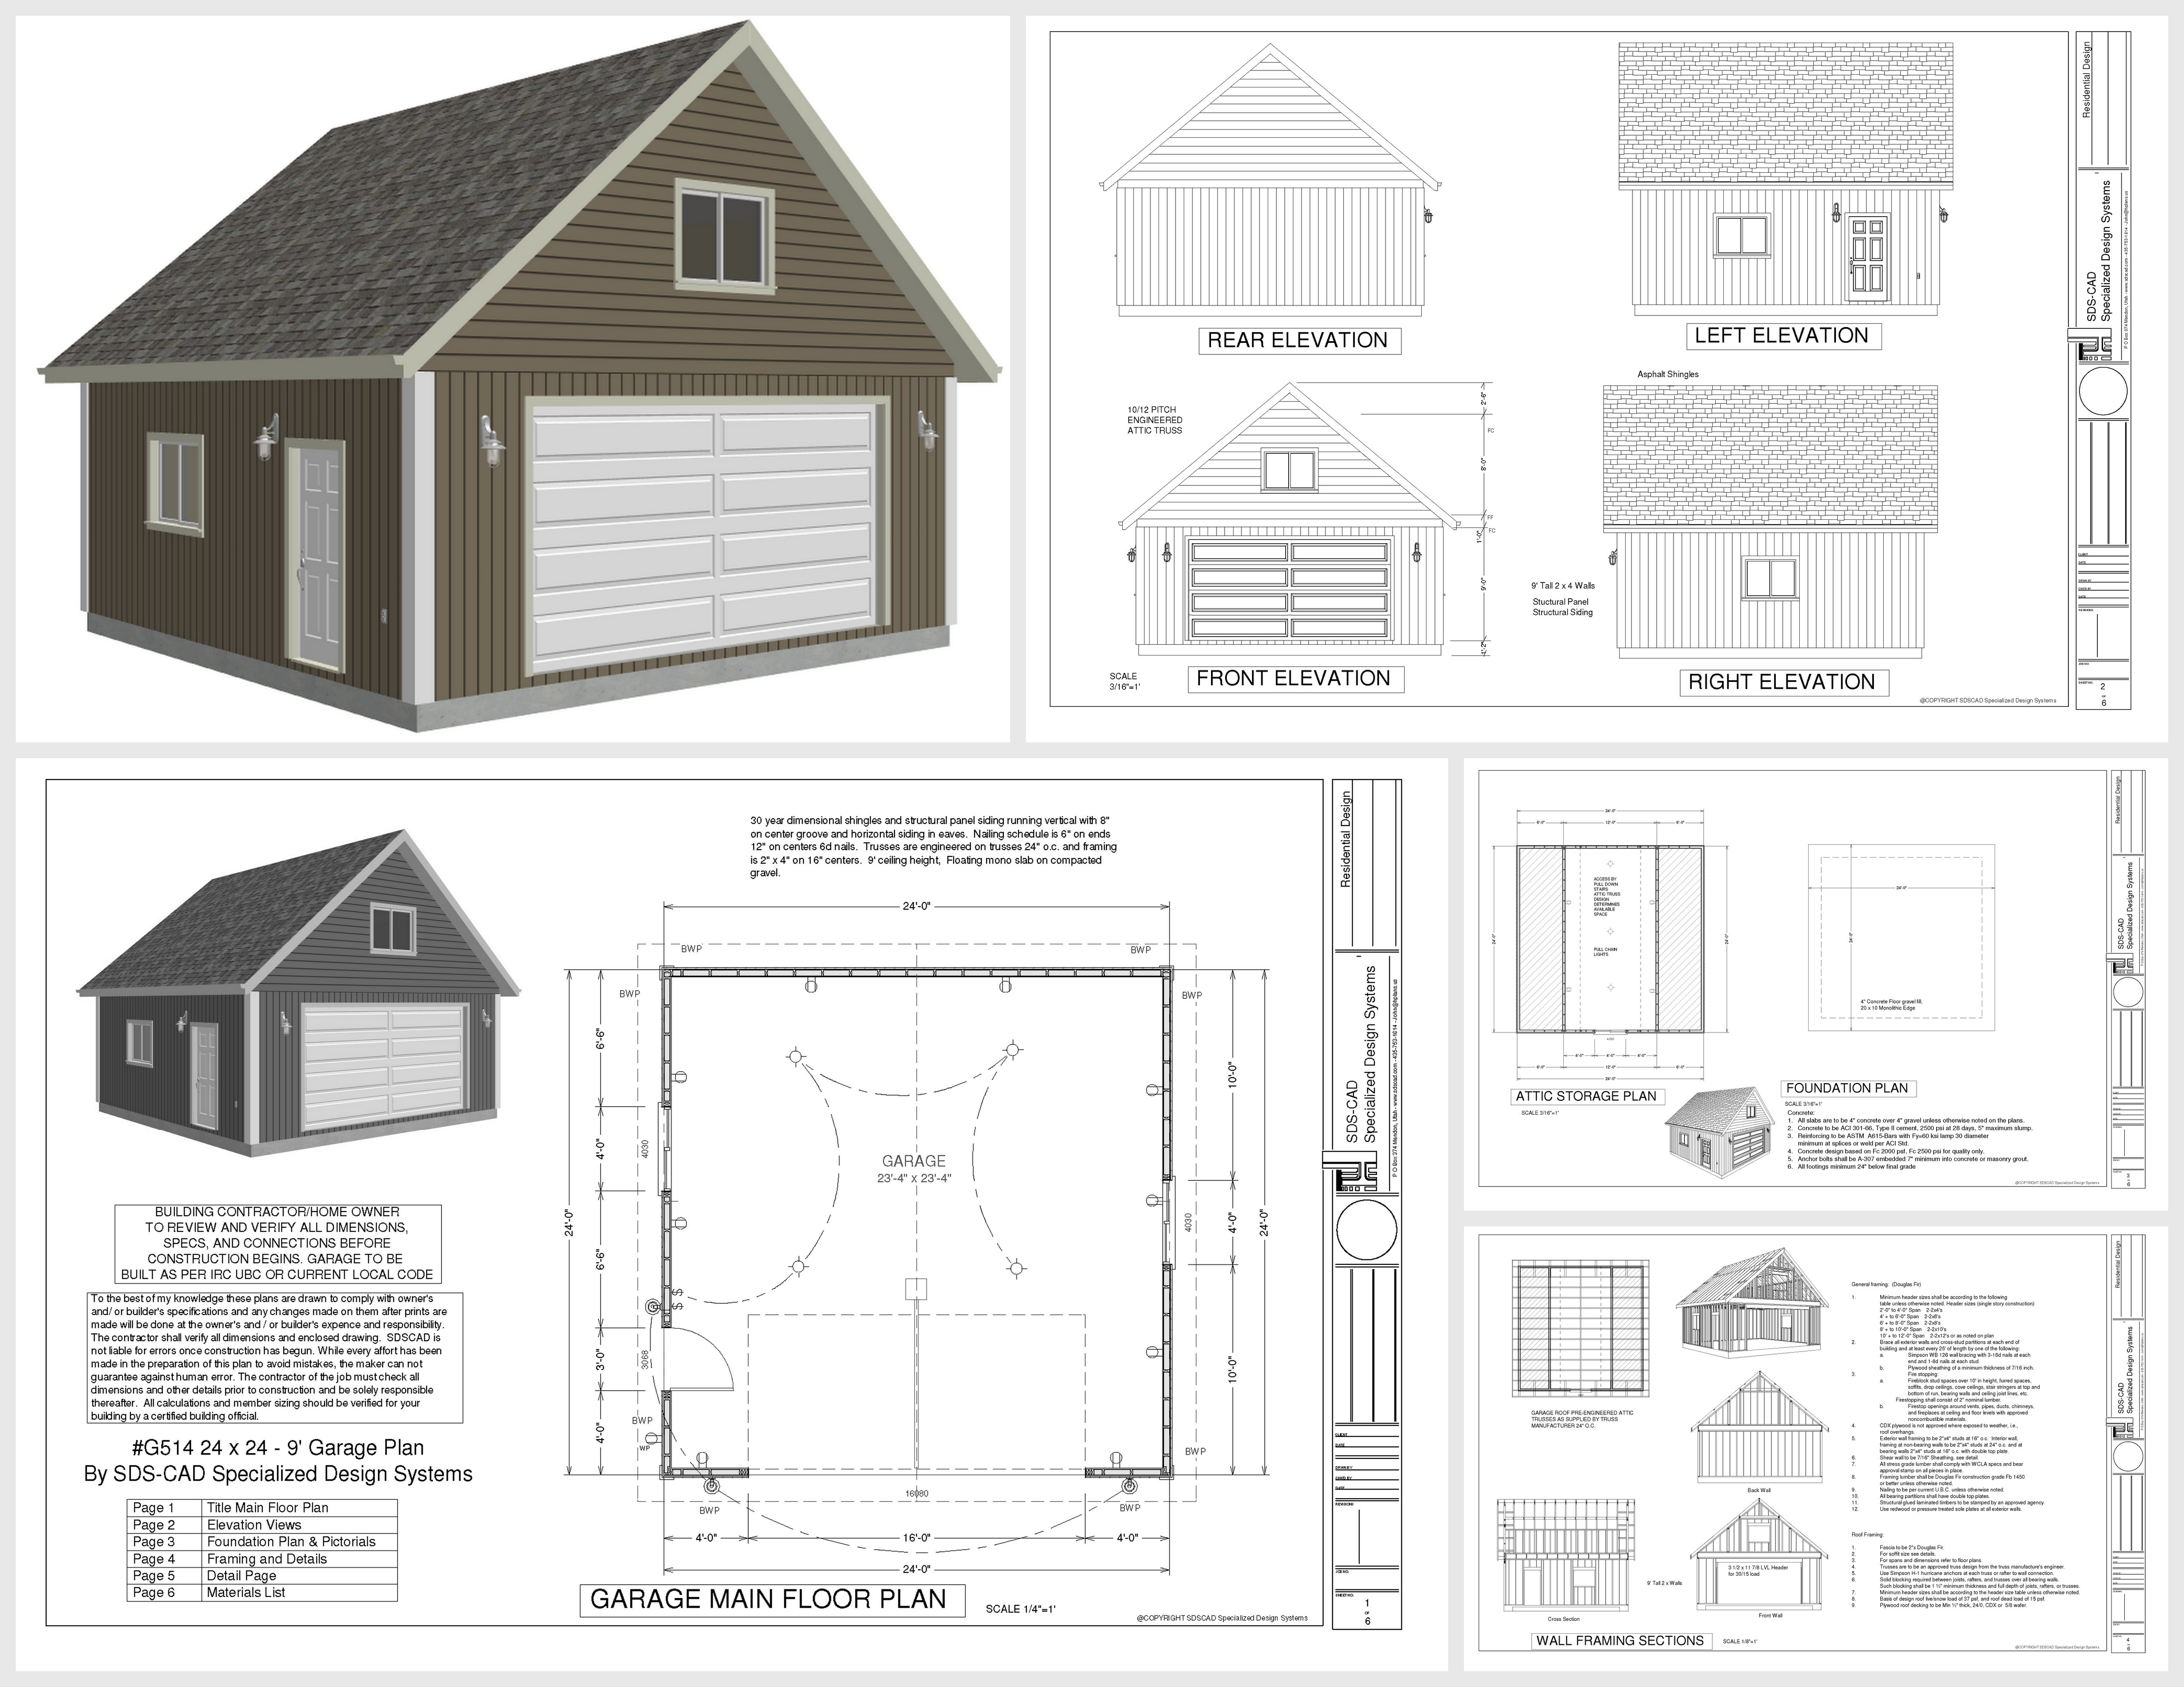 Loft guest house plans for Garage designs with loft